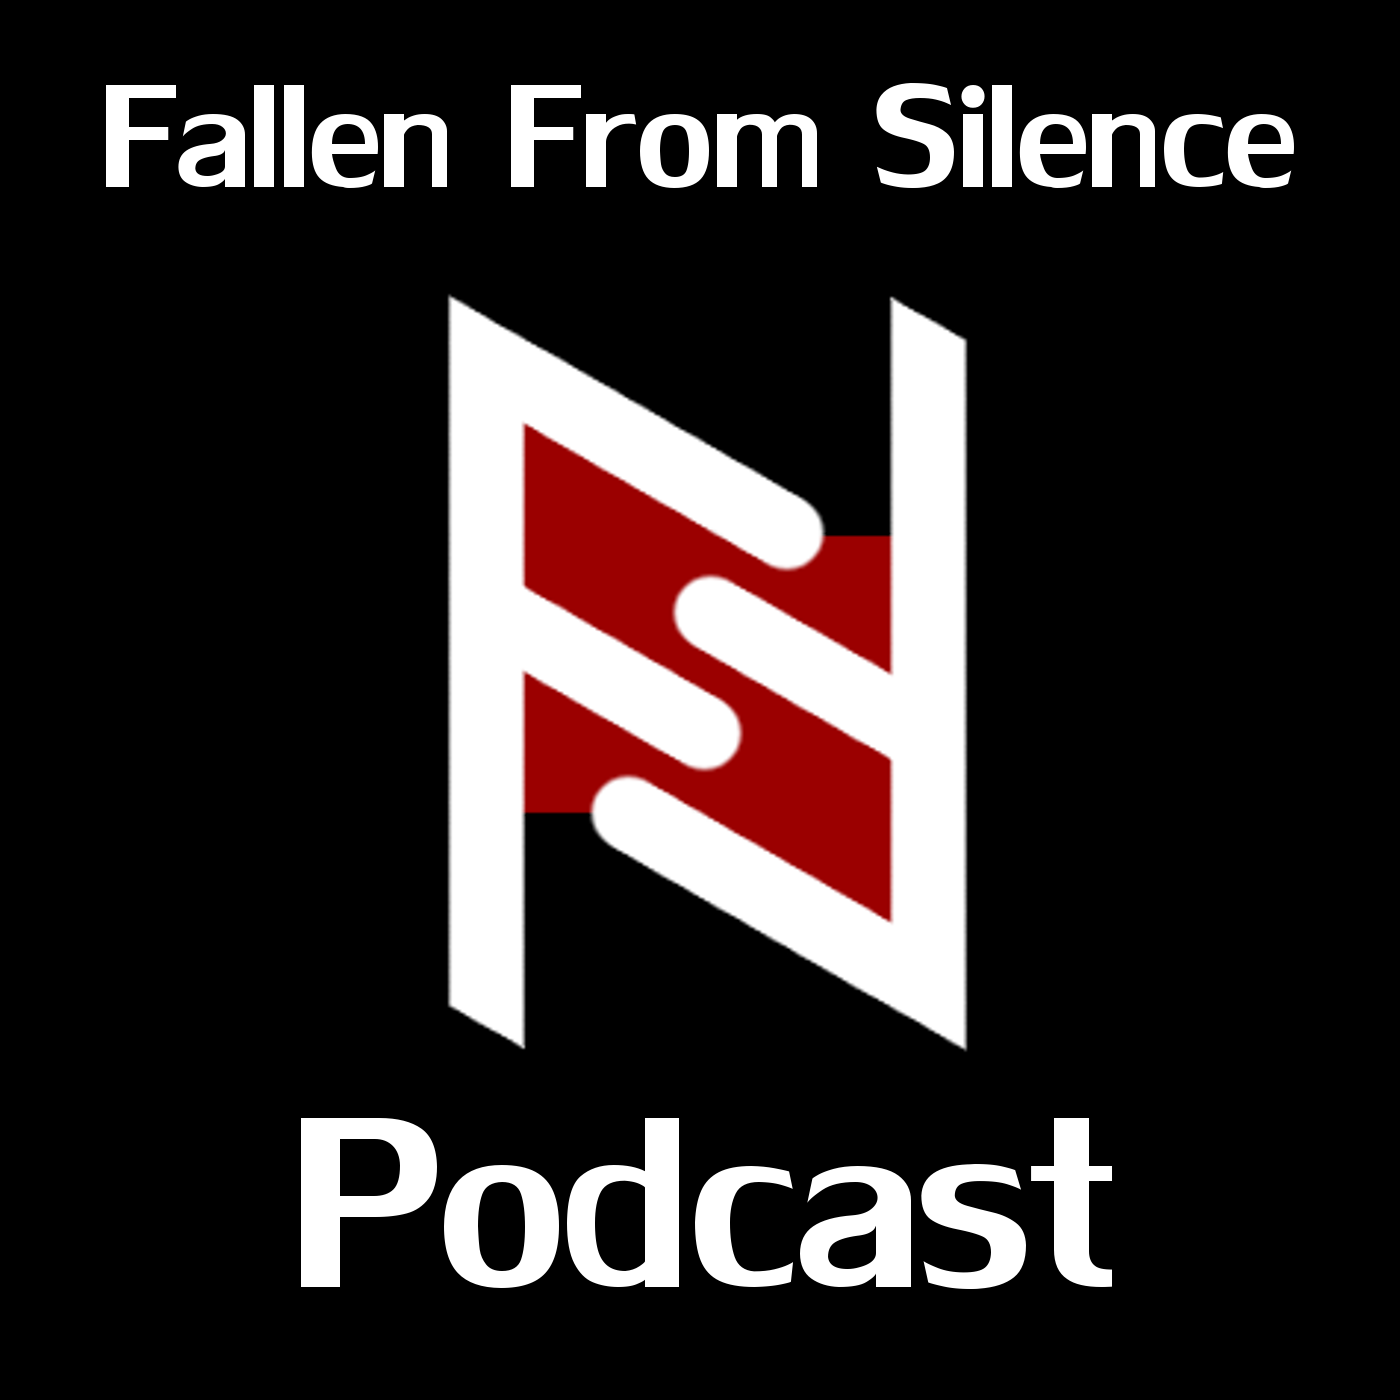 Fallen From Silence Podcast